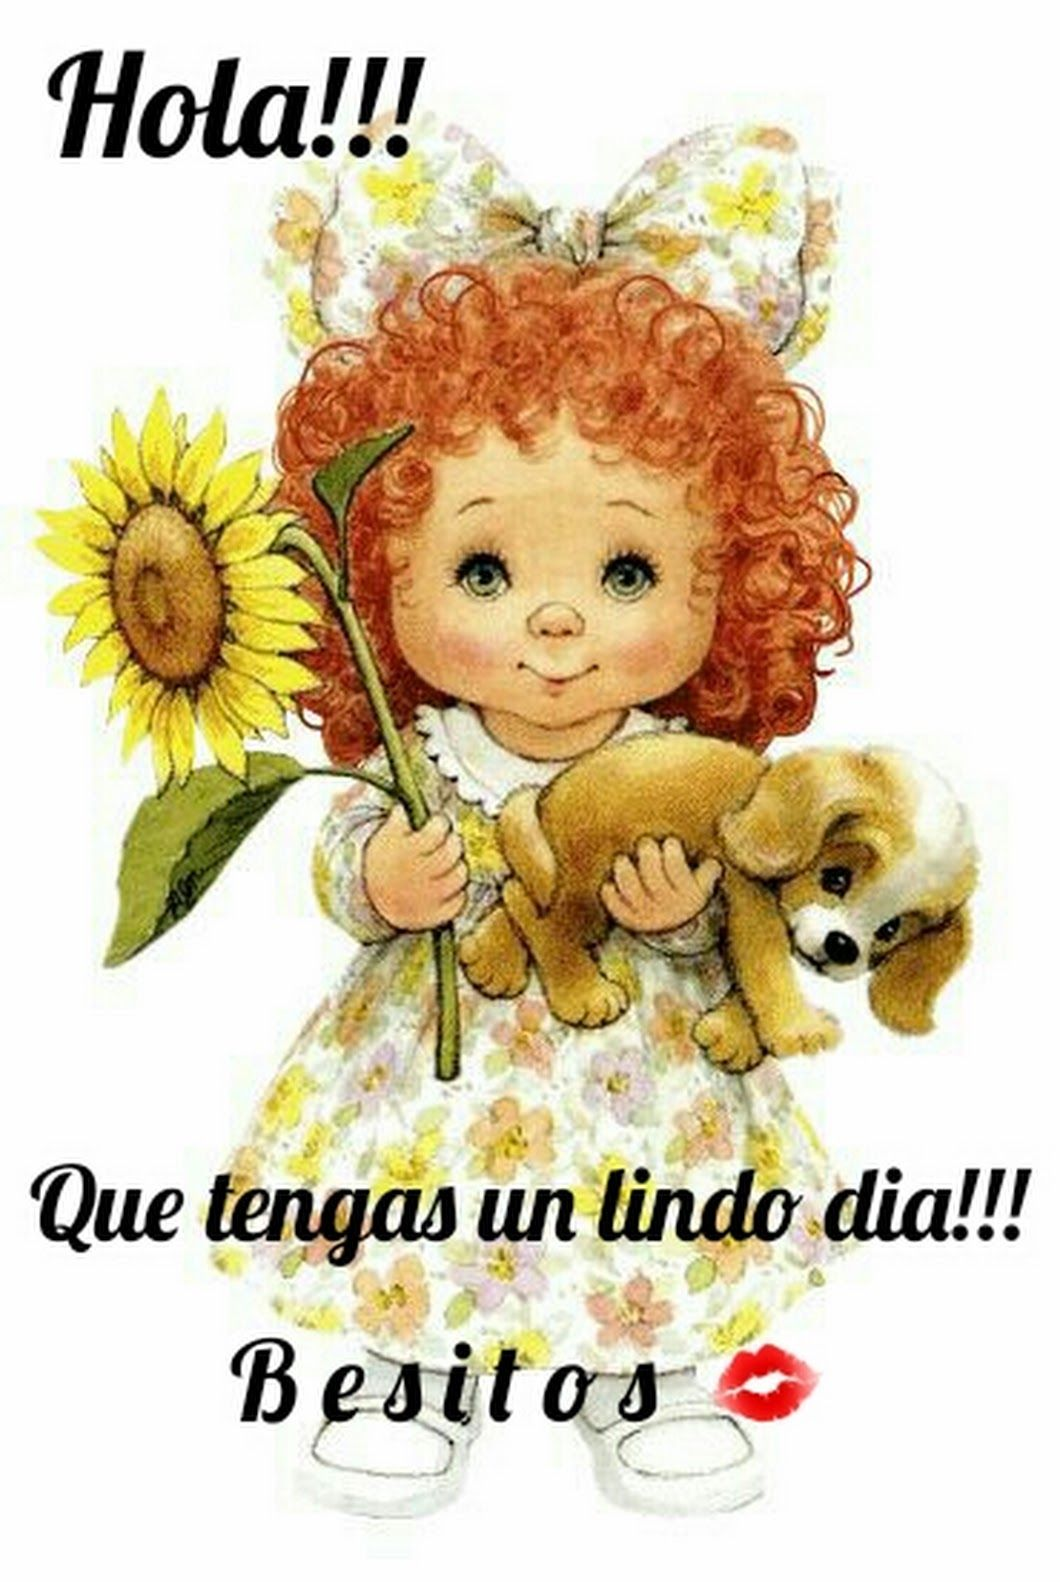 Pin By William Bernal On Saludos Pinterest Smileys Frases And